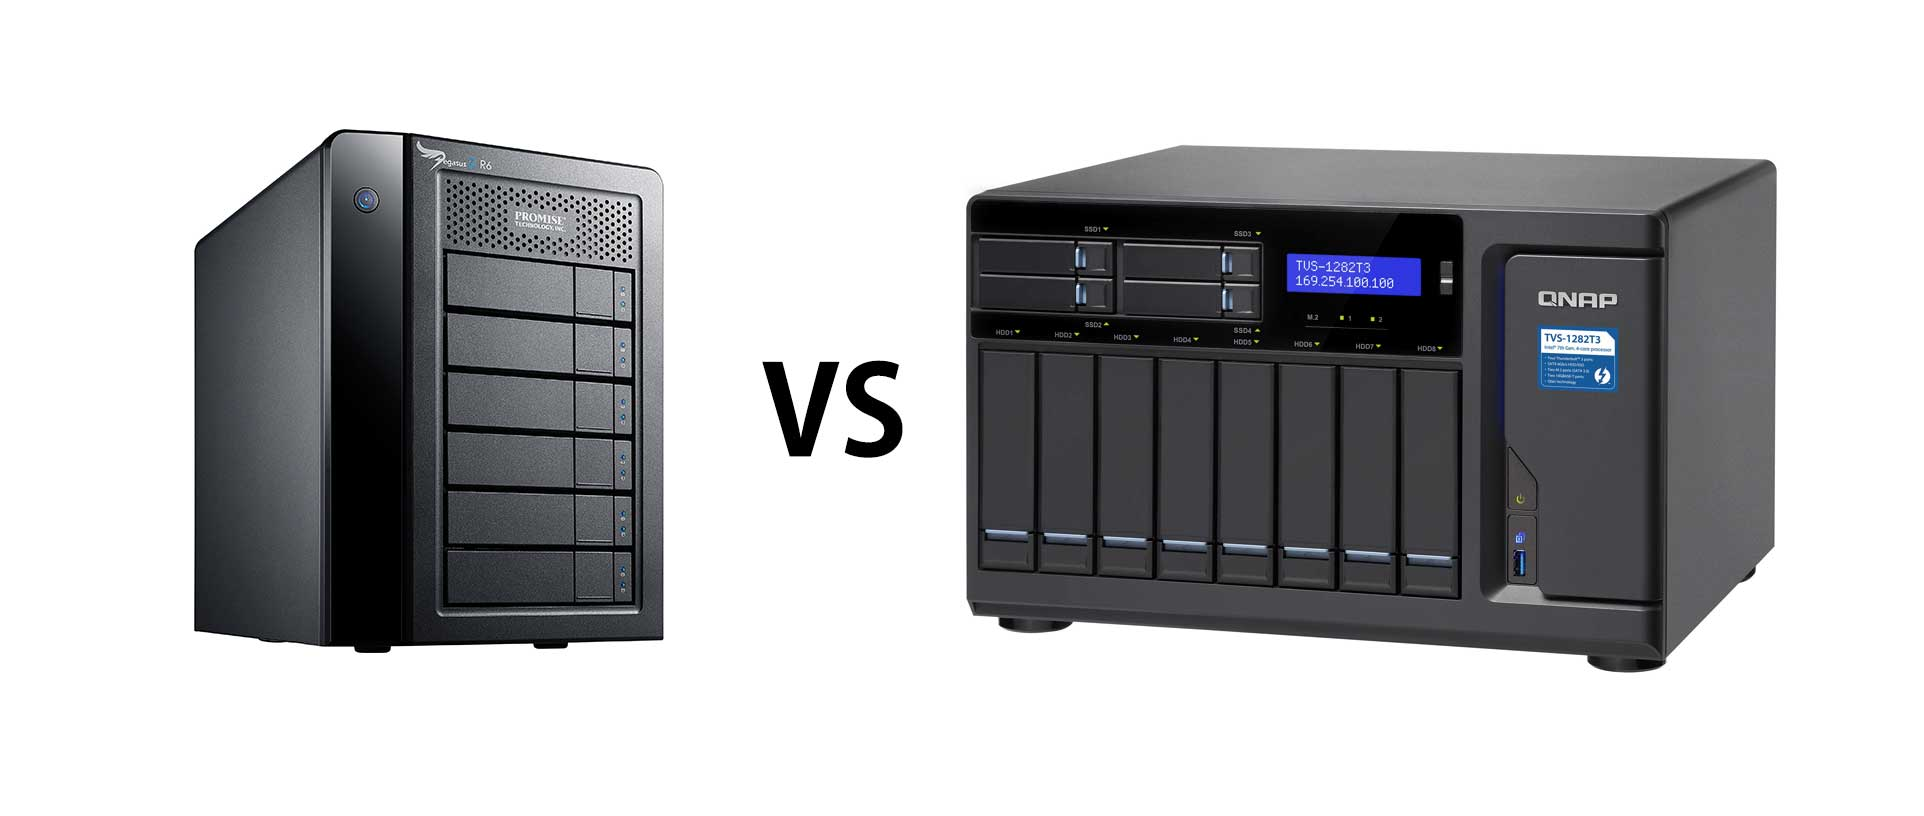 Choosing a file storage solution for our business (Promise